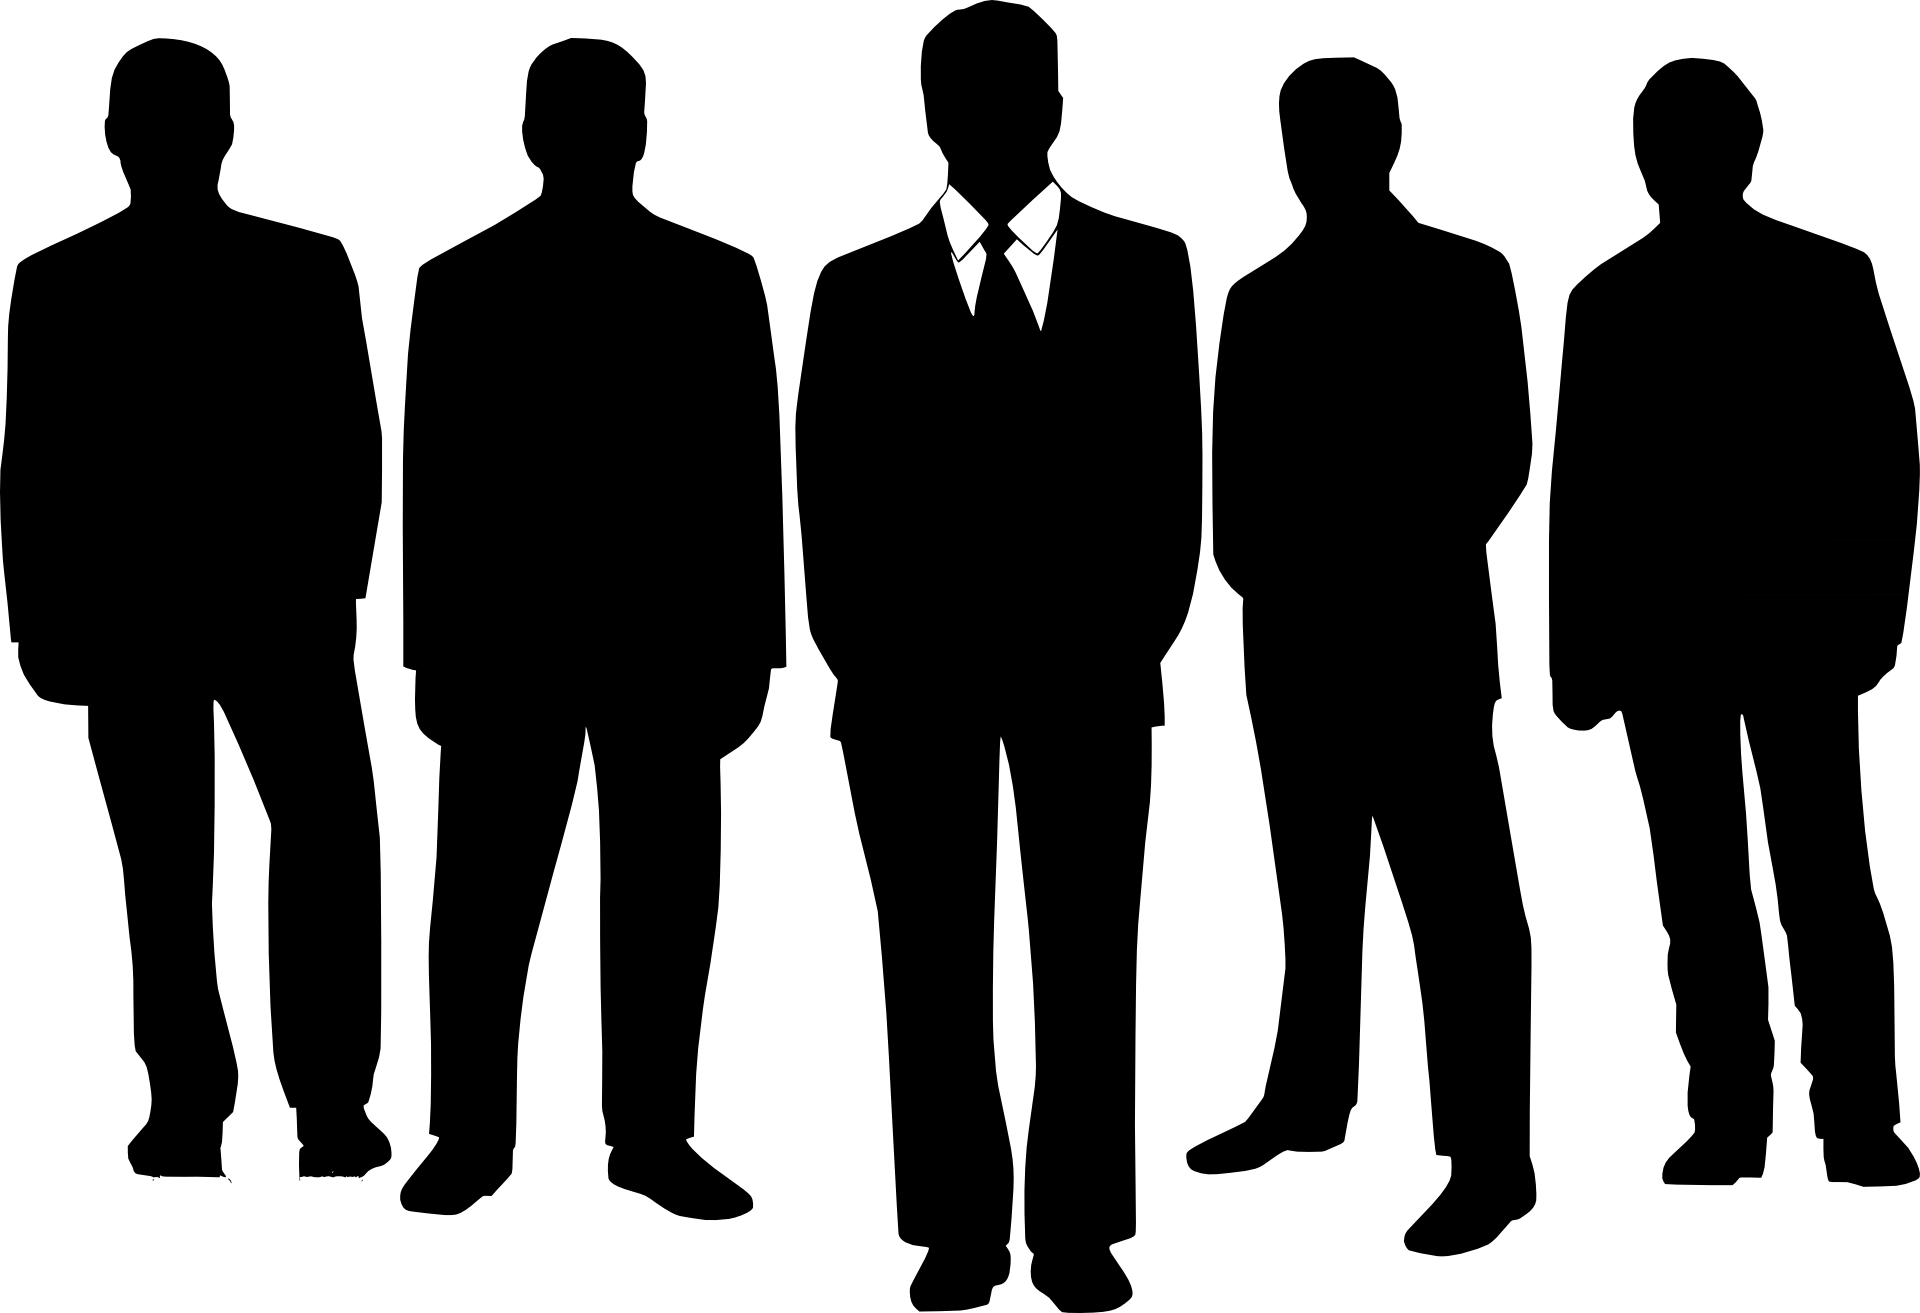 8 Business People Silhouette Vector Images